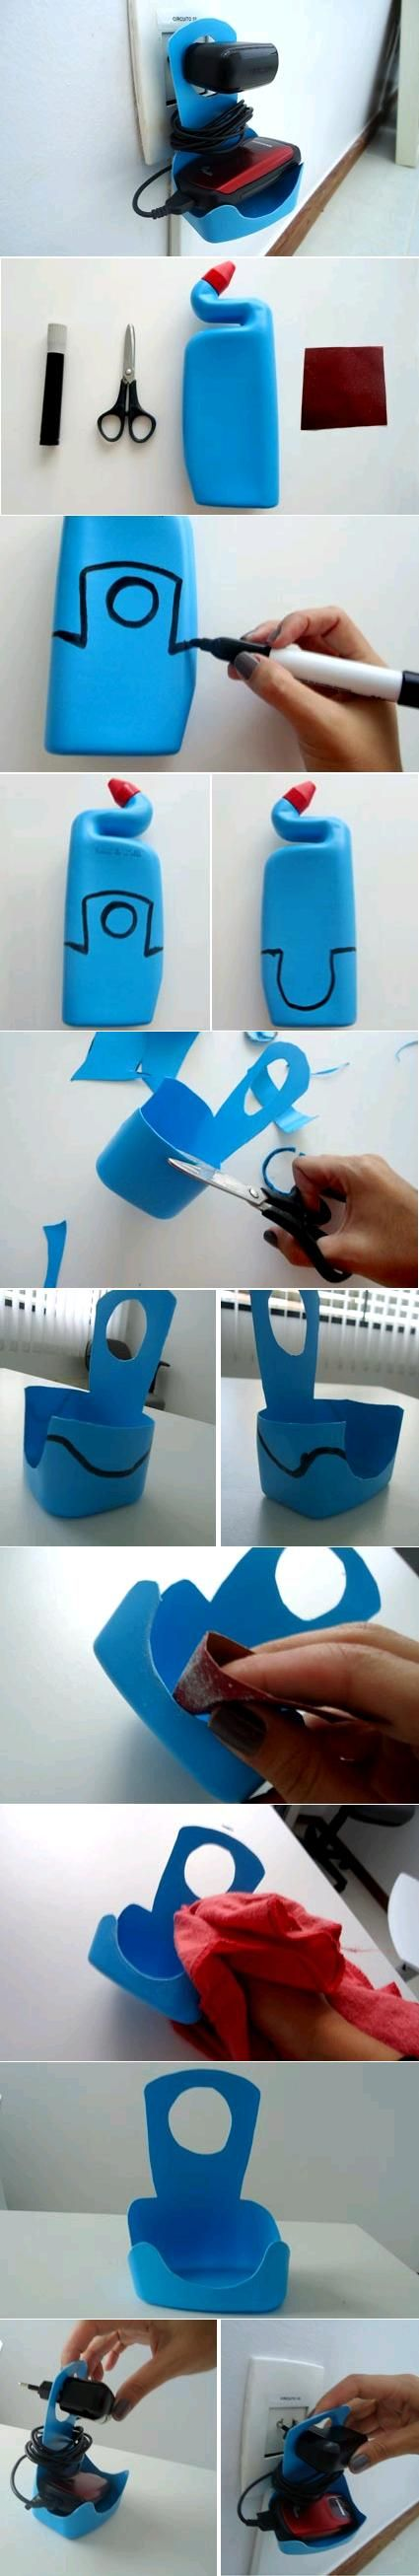 DIY Plastic Bottle Mobile Phone Charger Holder